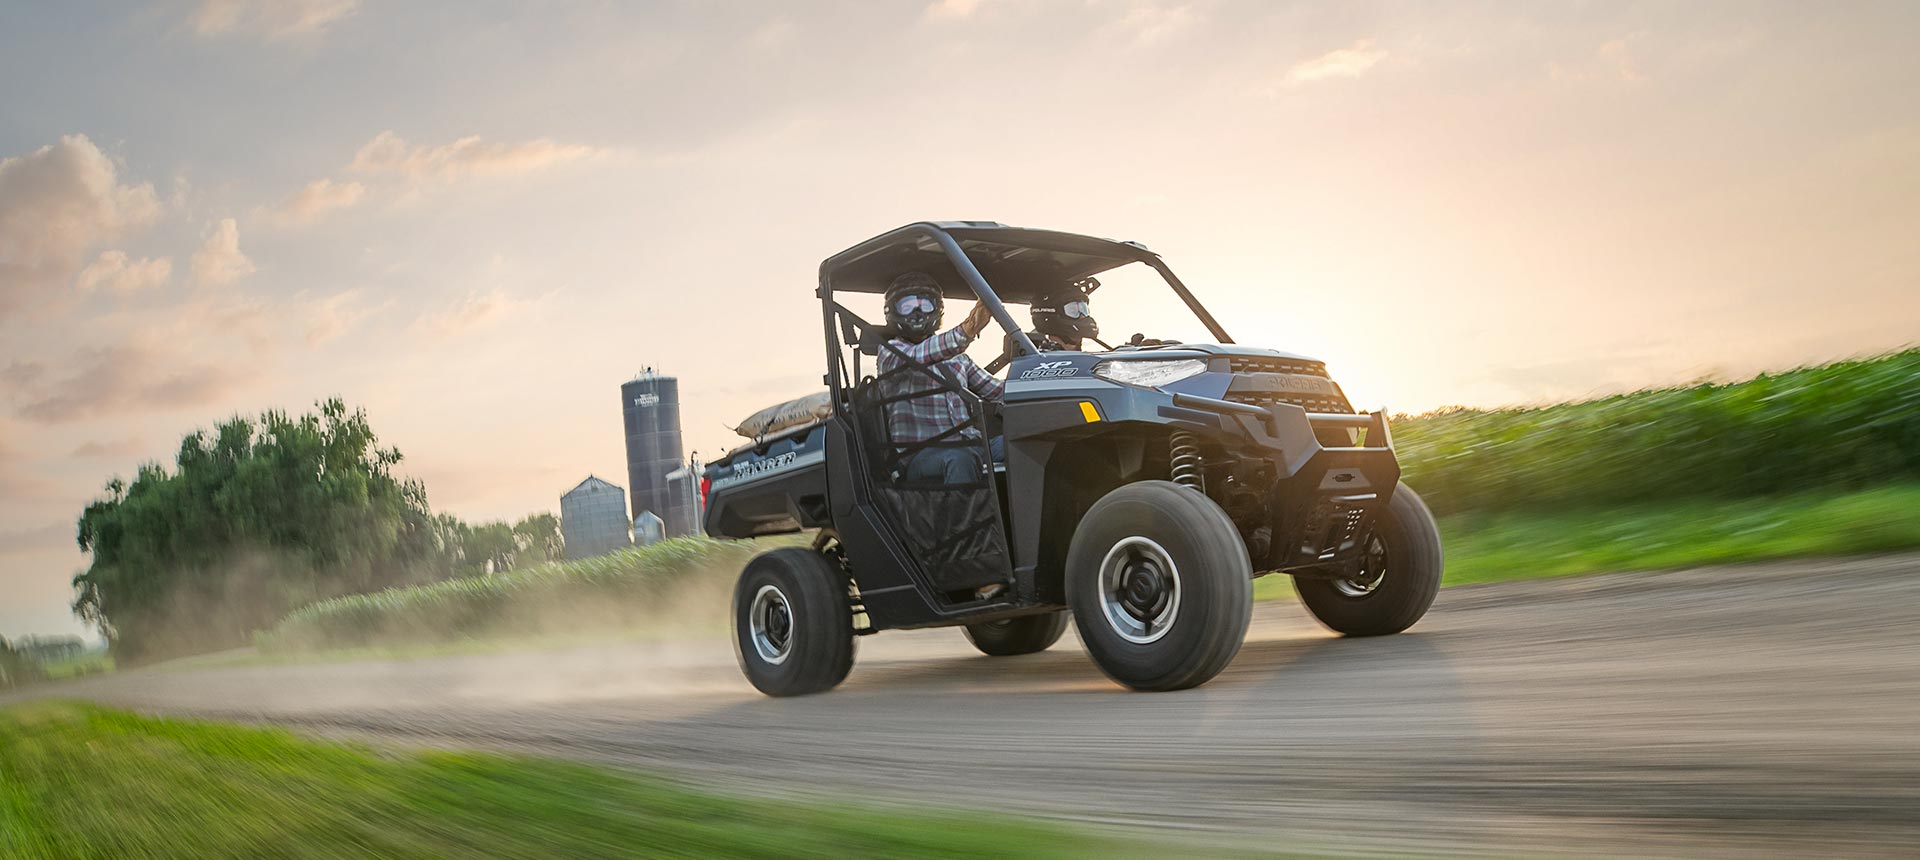 2019 Polaris Ranger XP 1000 EPS in Tyler, Texas - Photo 11